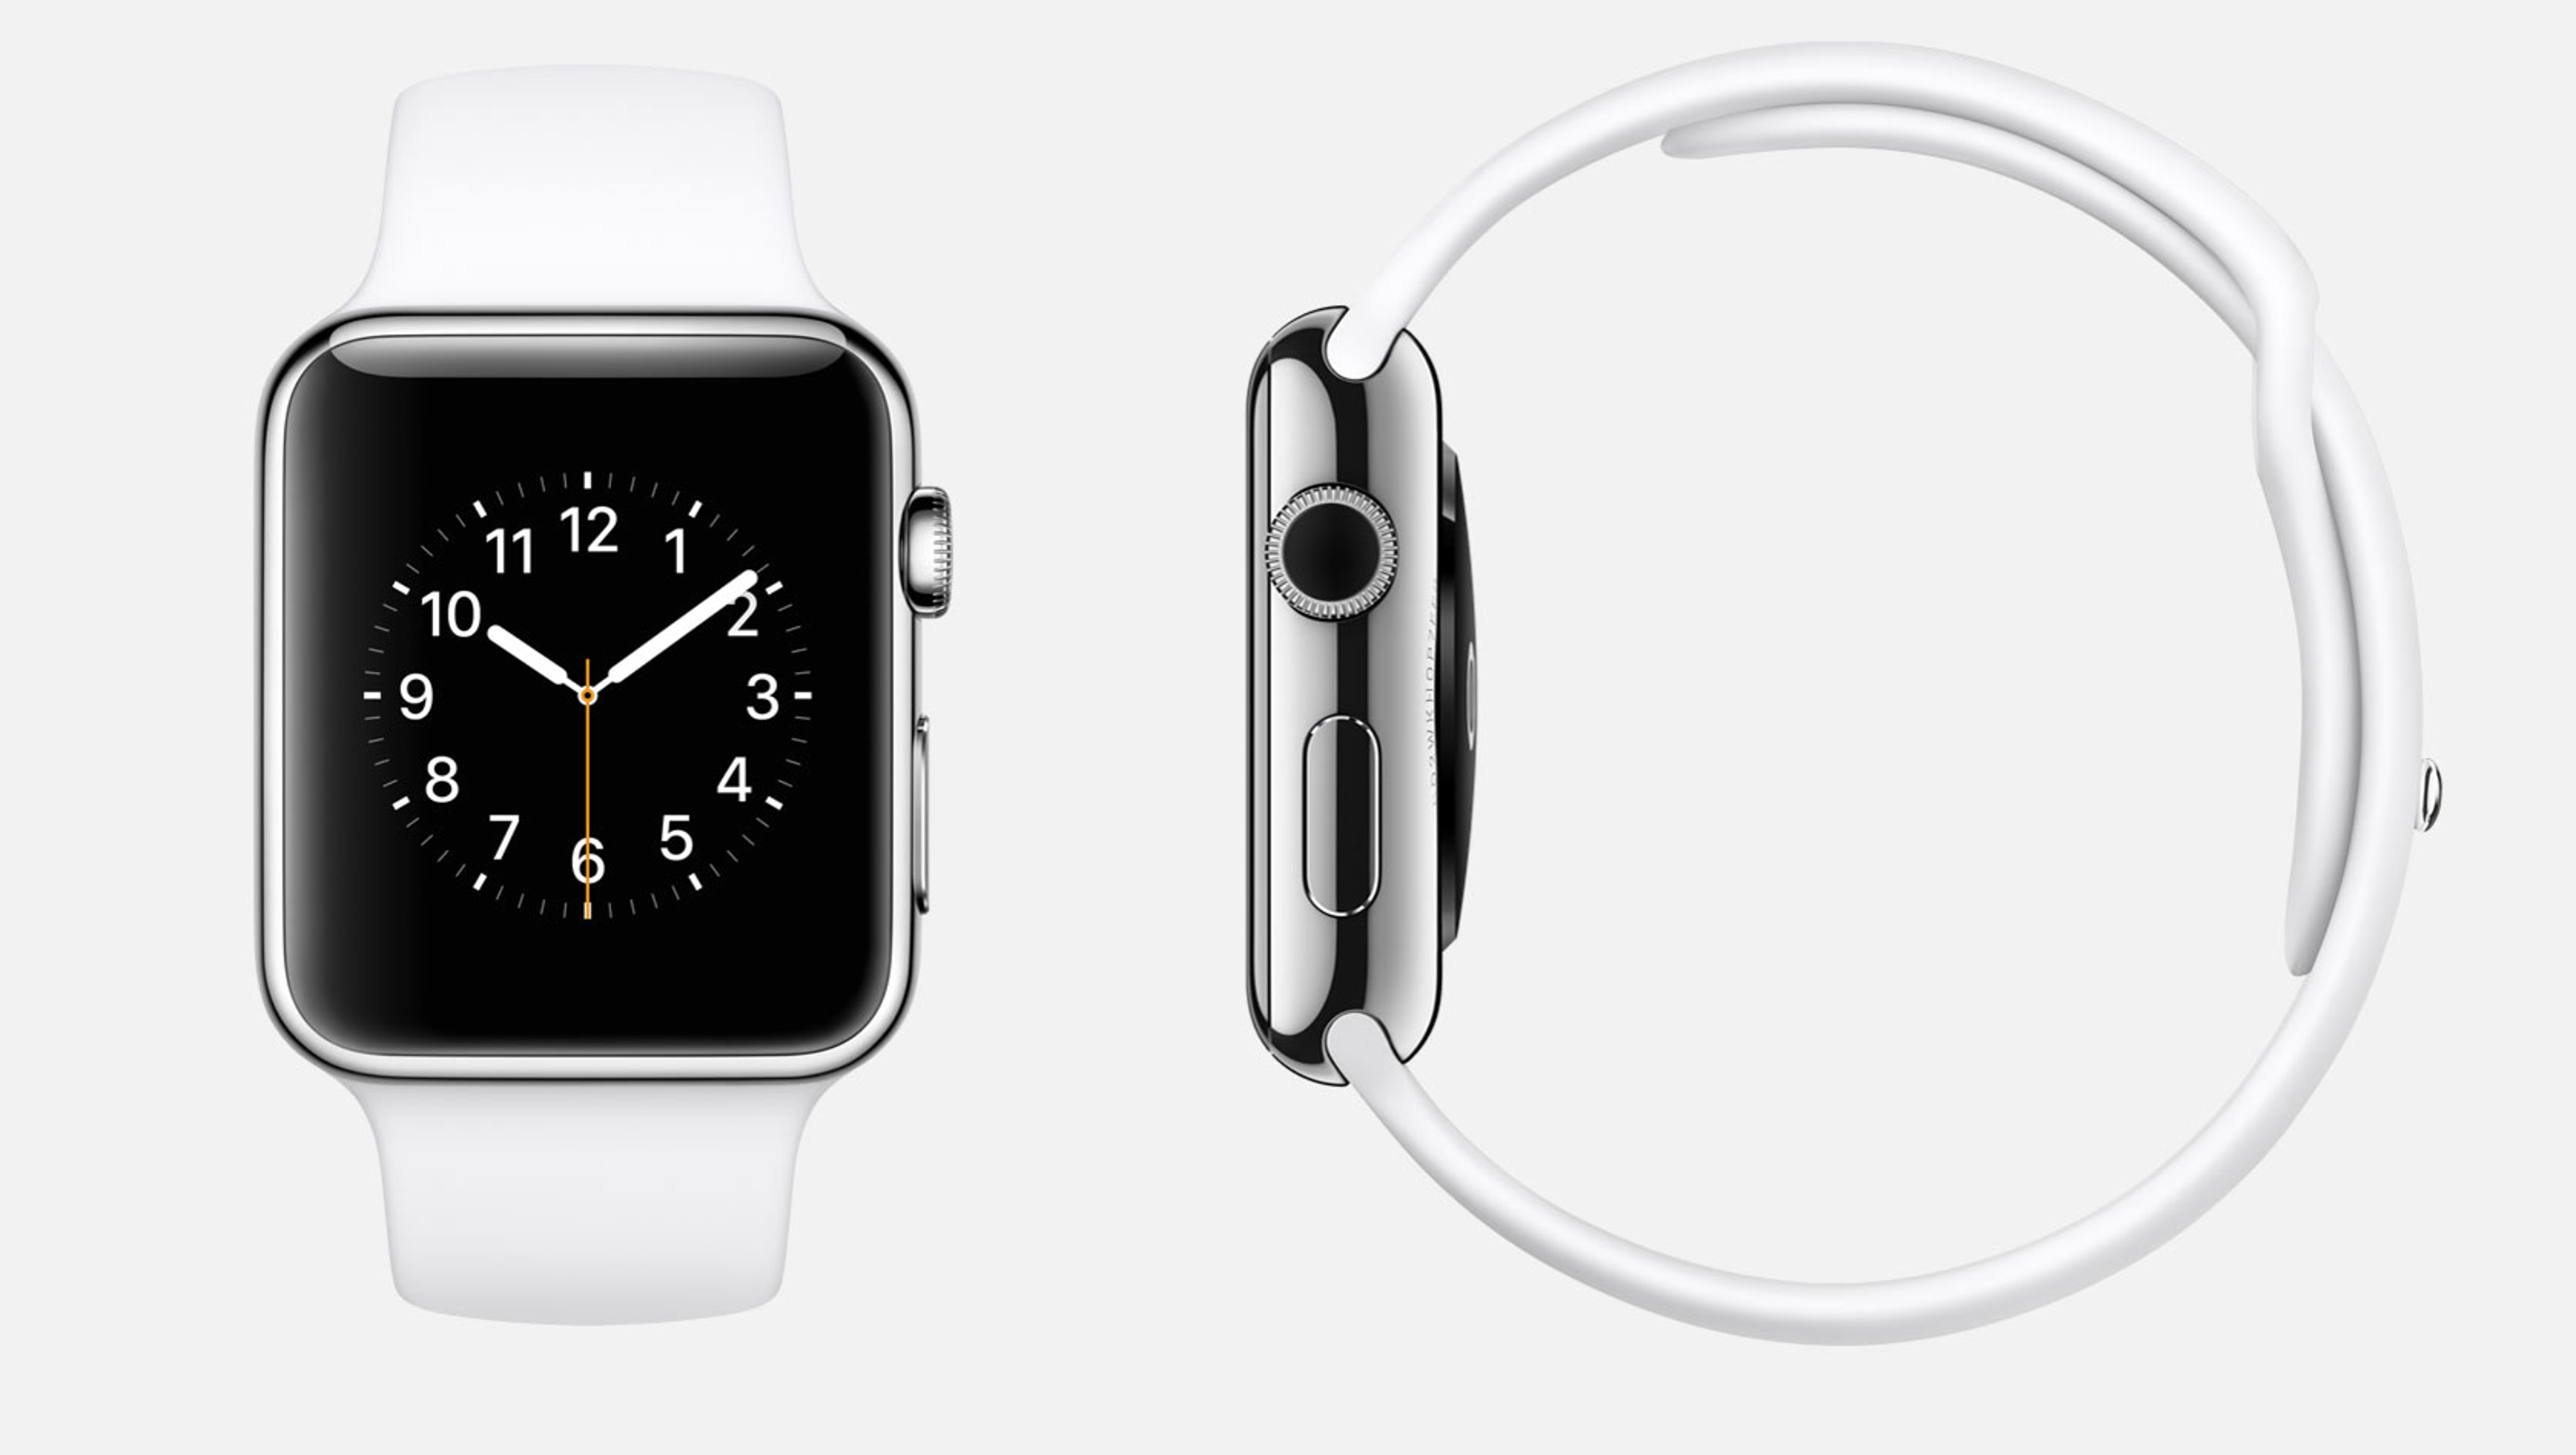 Apple Watch projected to sell 20 million in first year